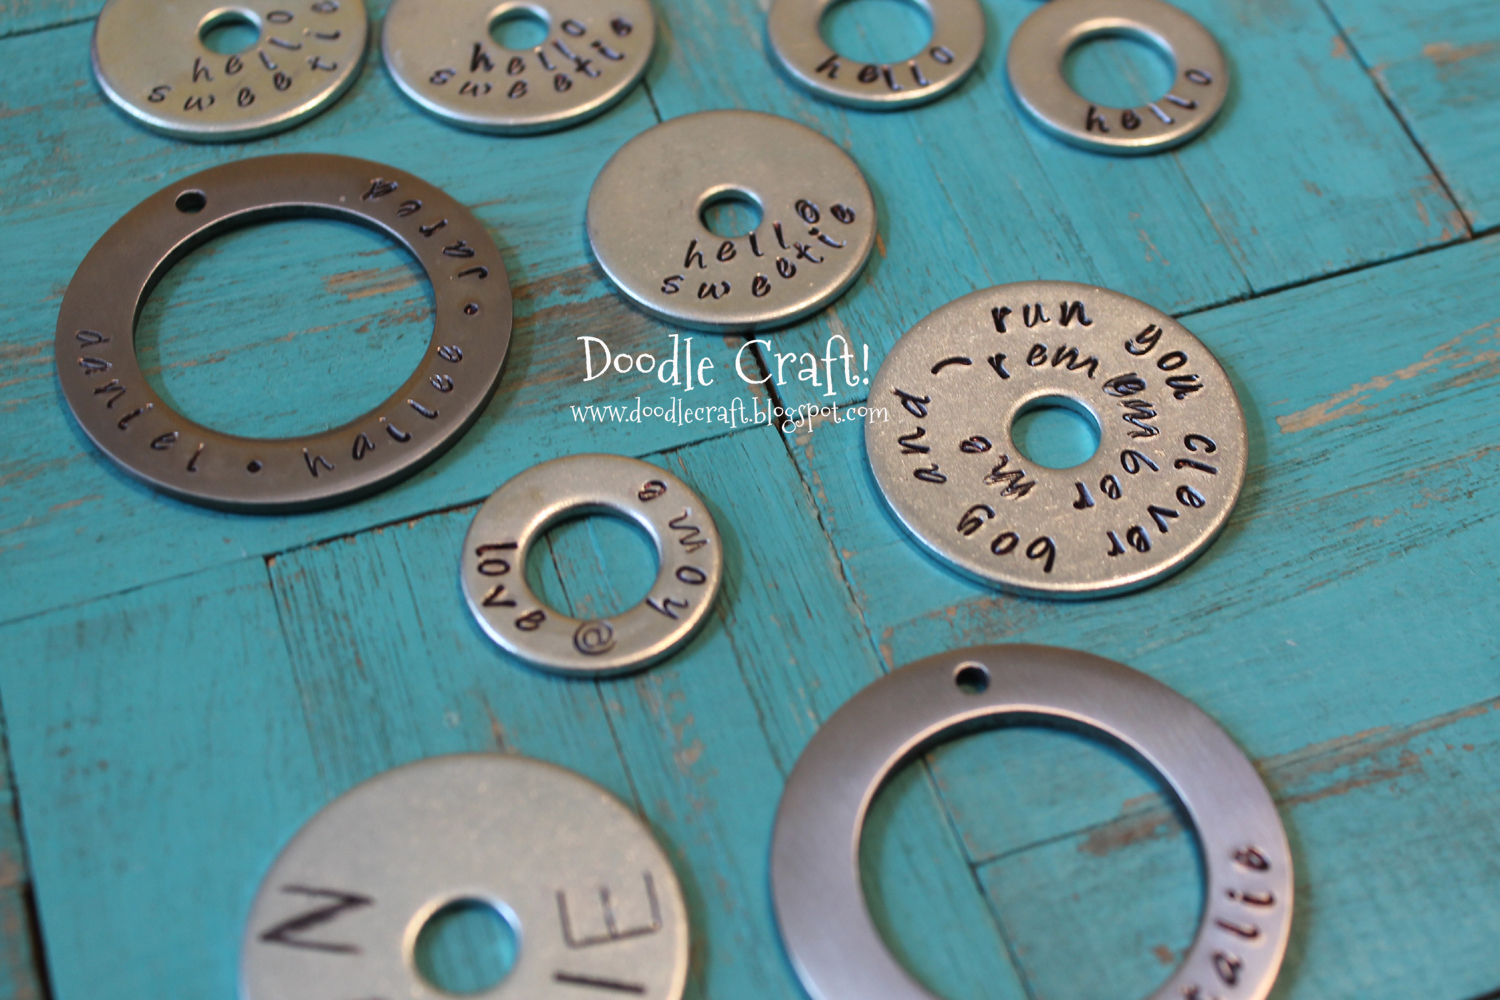 Doodlecraft Handstamped Washer Necklaces